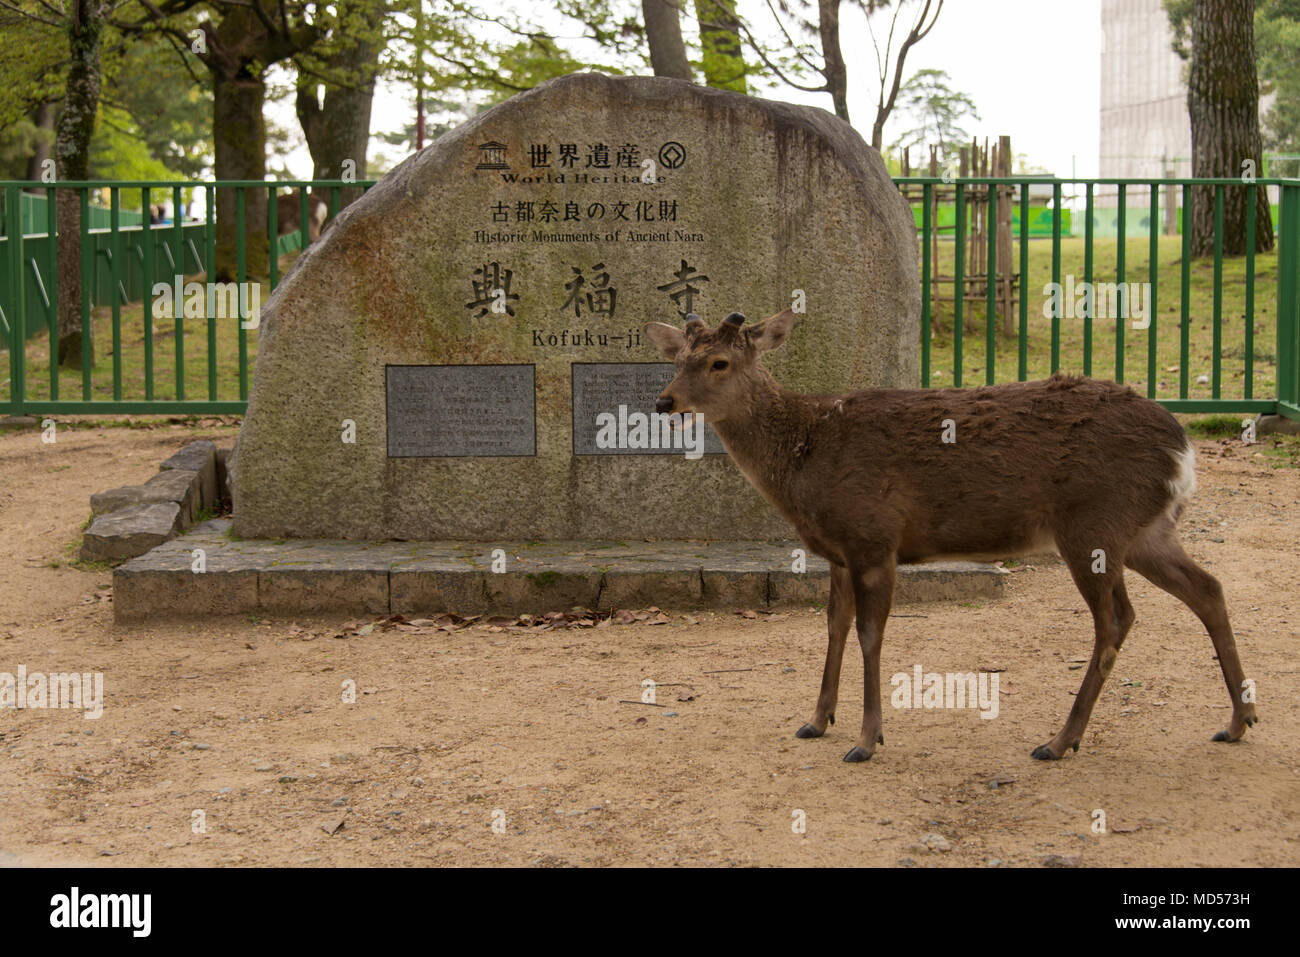 Sitka deer at entrance to Nara World Heritage site - Stock Image